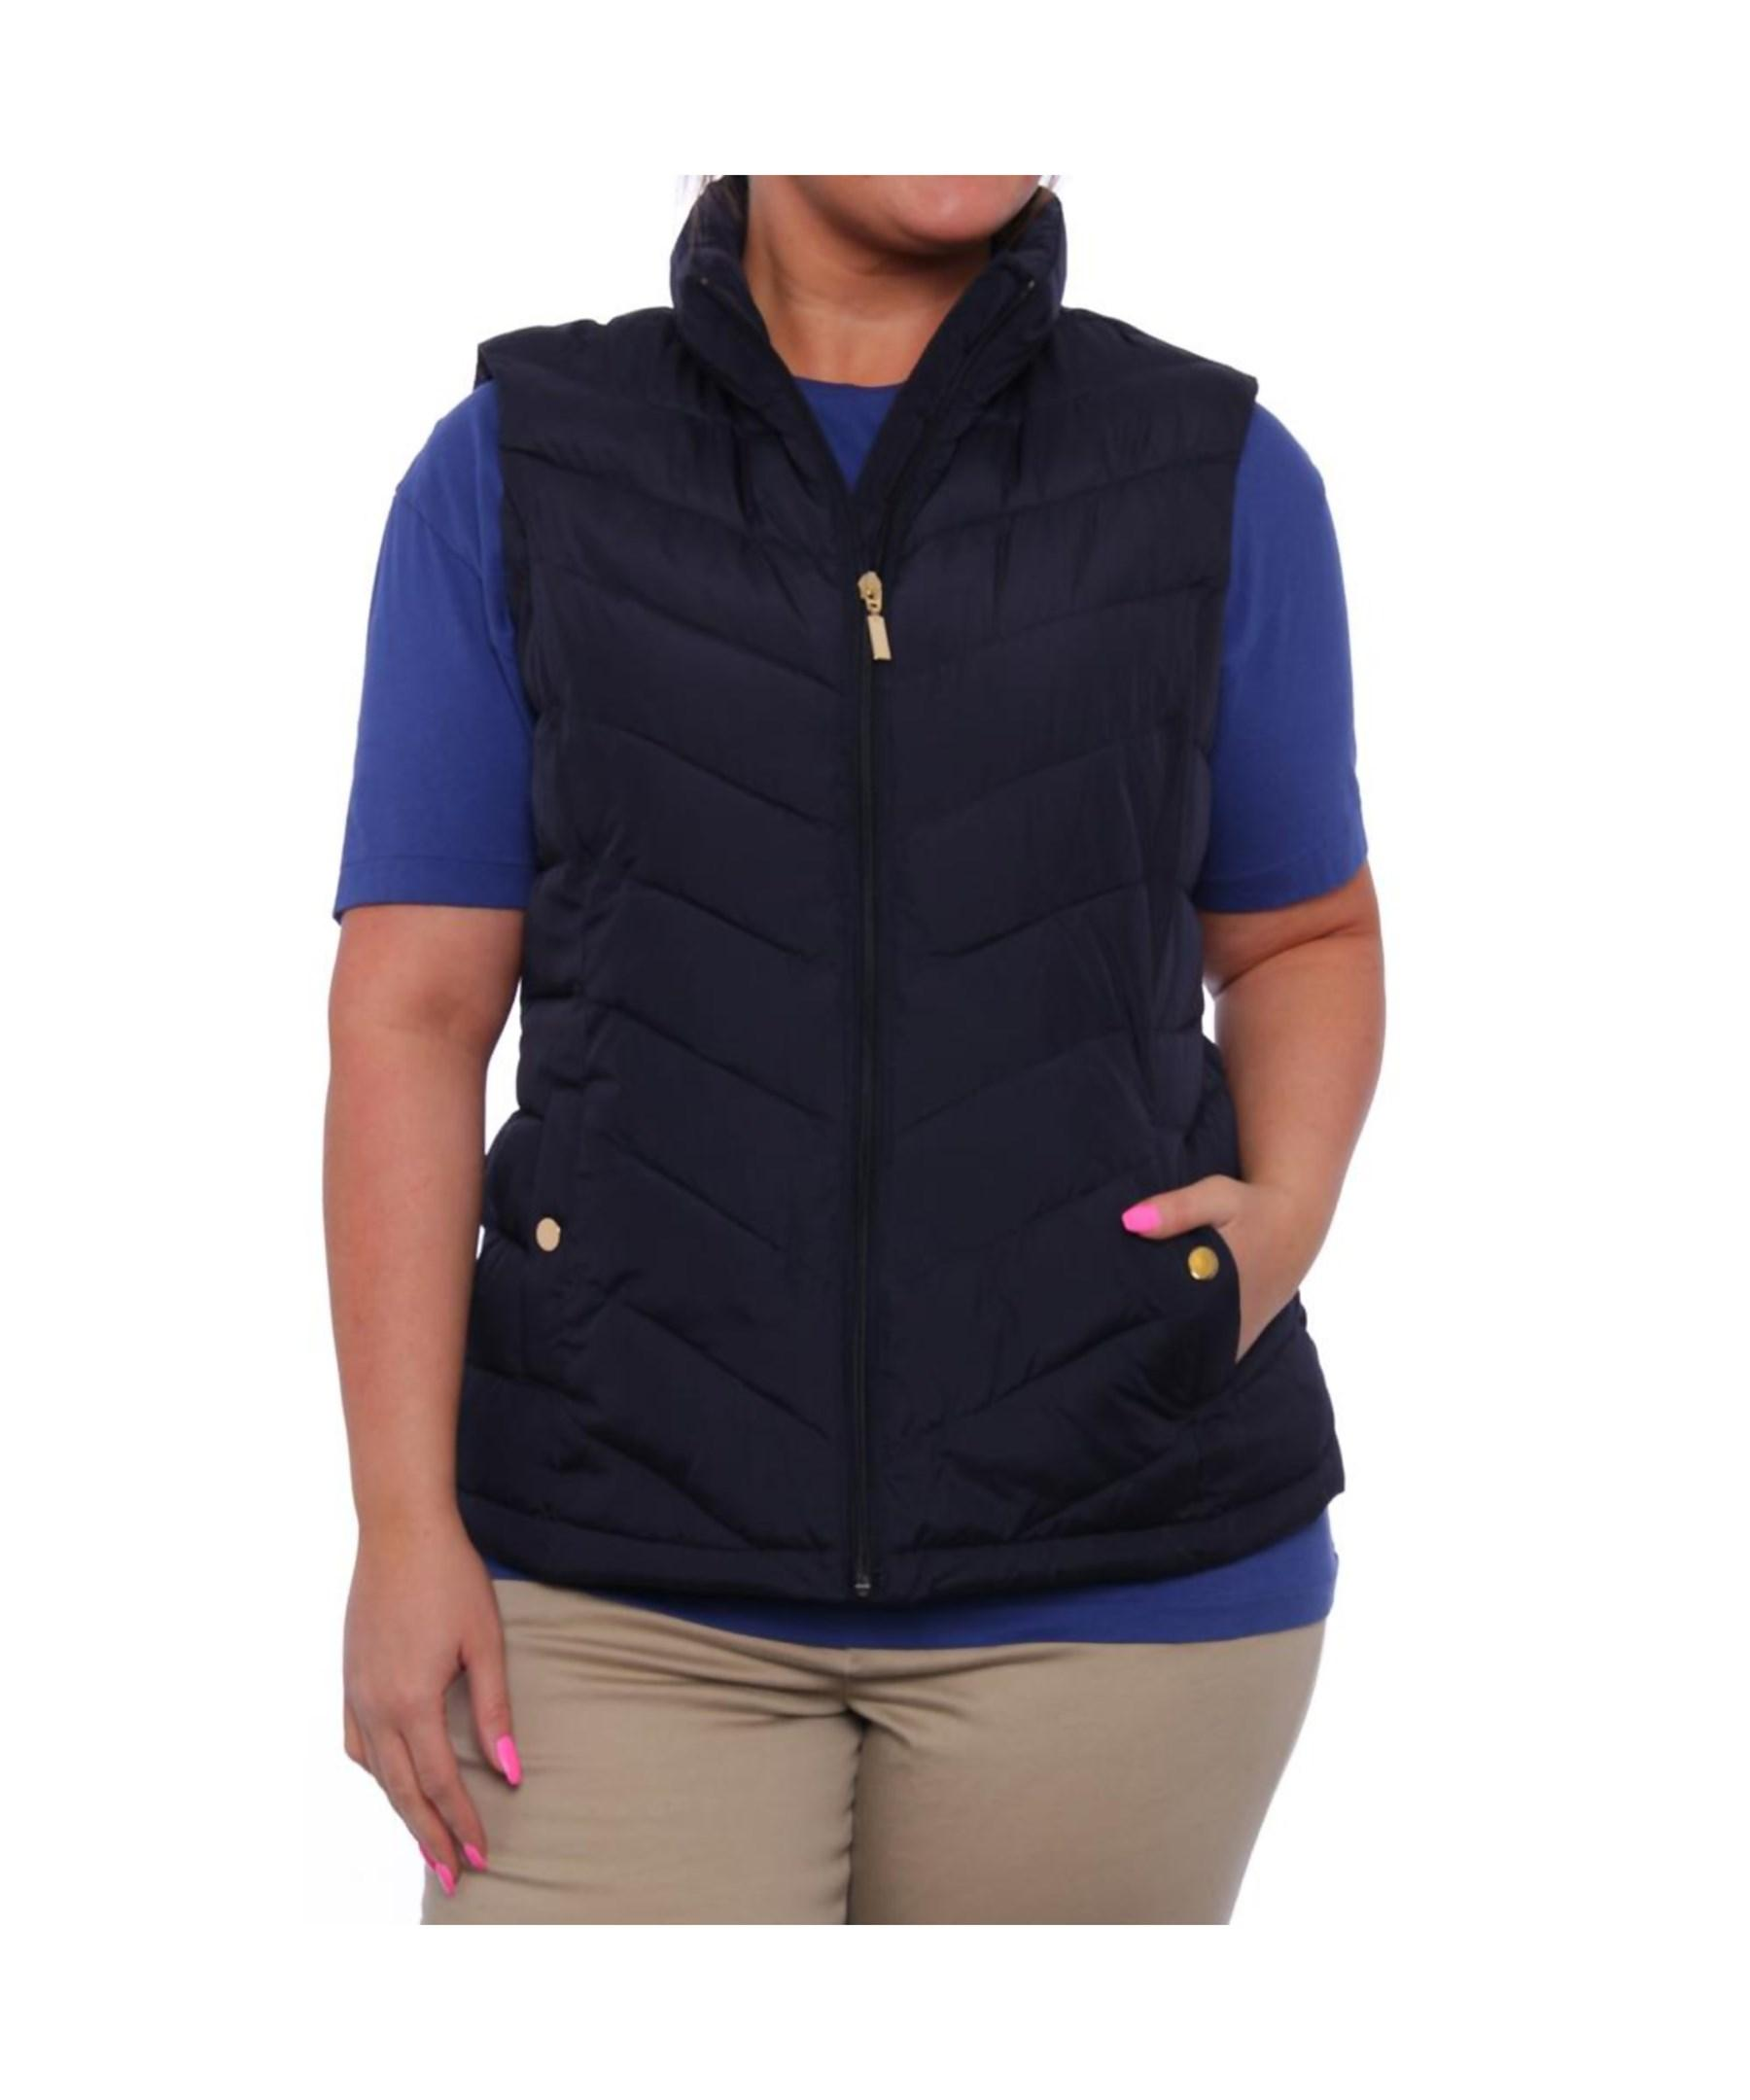 Discover men's puffer vests and warm vest jackets at Burlington. Great prices on all styles, with free shipping available. Lacoste Mens Blue Quilt-Stitch Vest Jacket. Keeping this secret is one of the ways we keep bringing you top designers and brands at great prices.